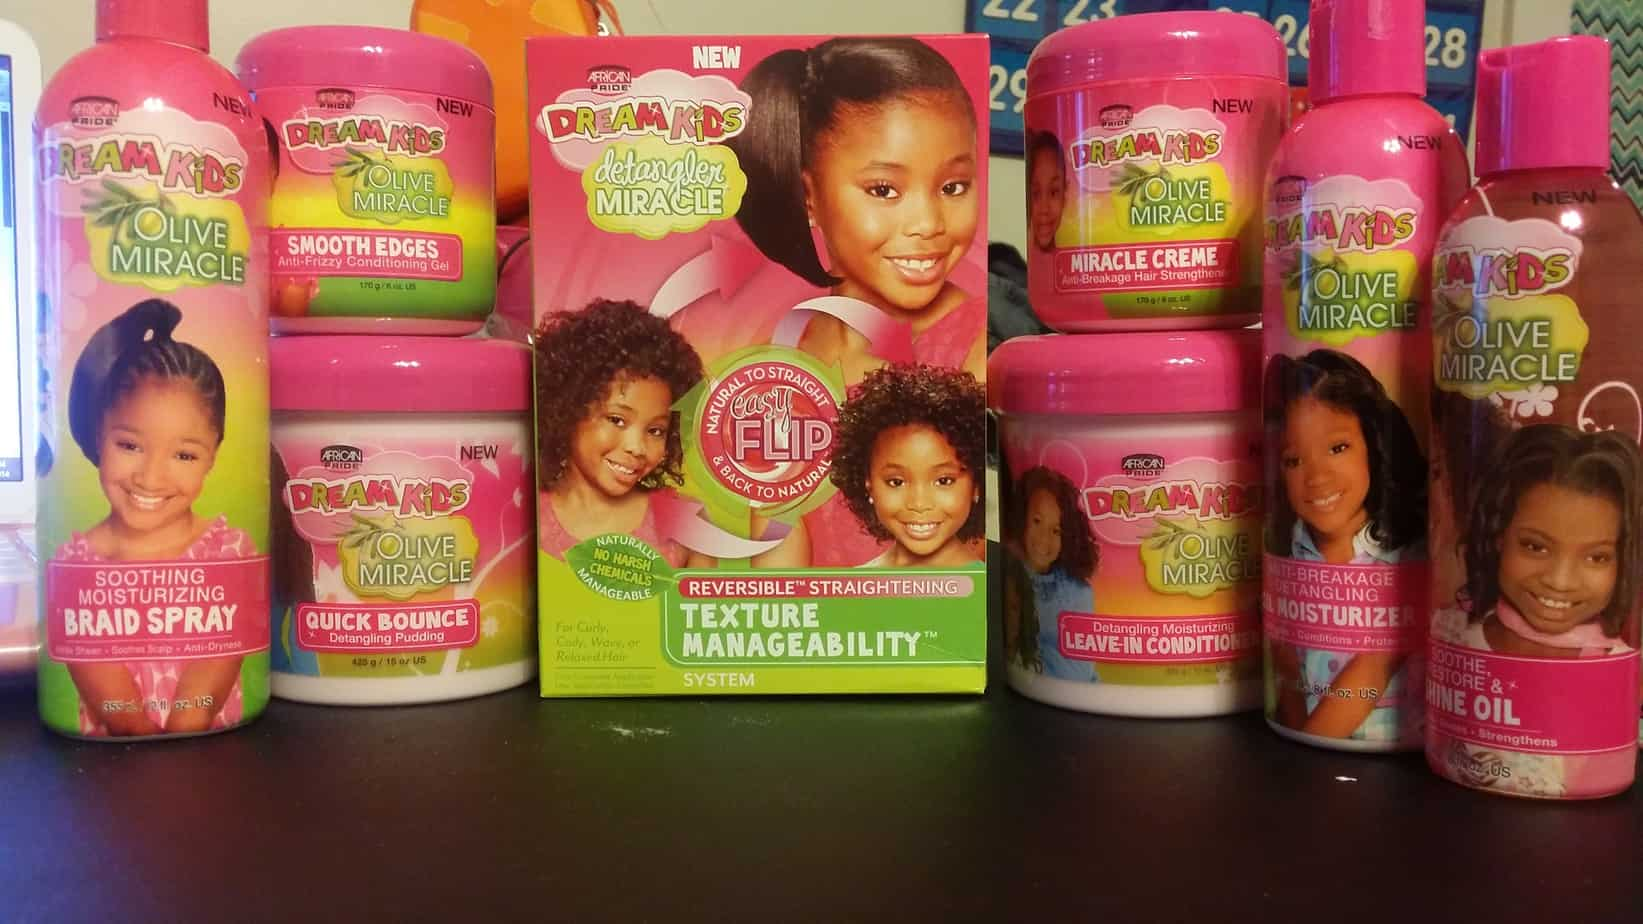 Dream Kids Detangler Miracle Texture Manageability System Offers ...